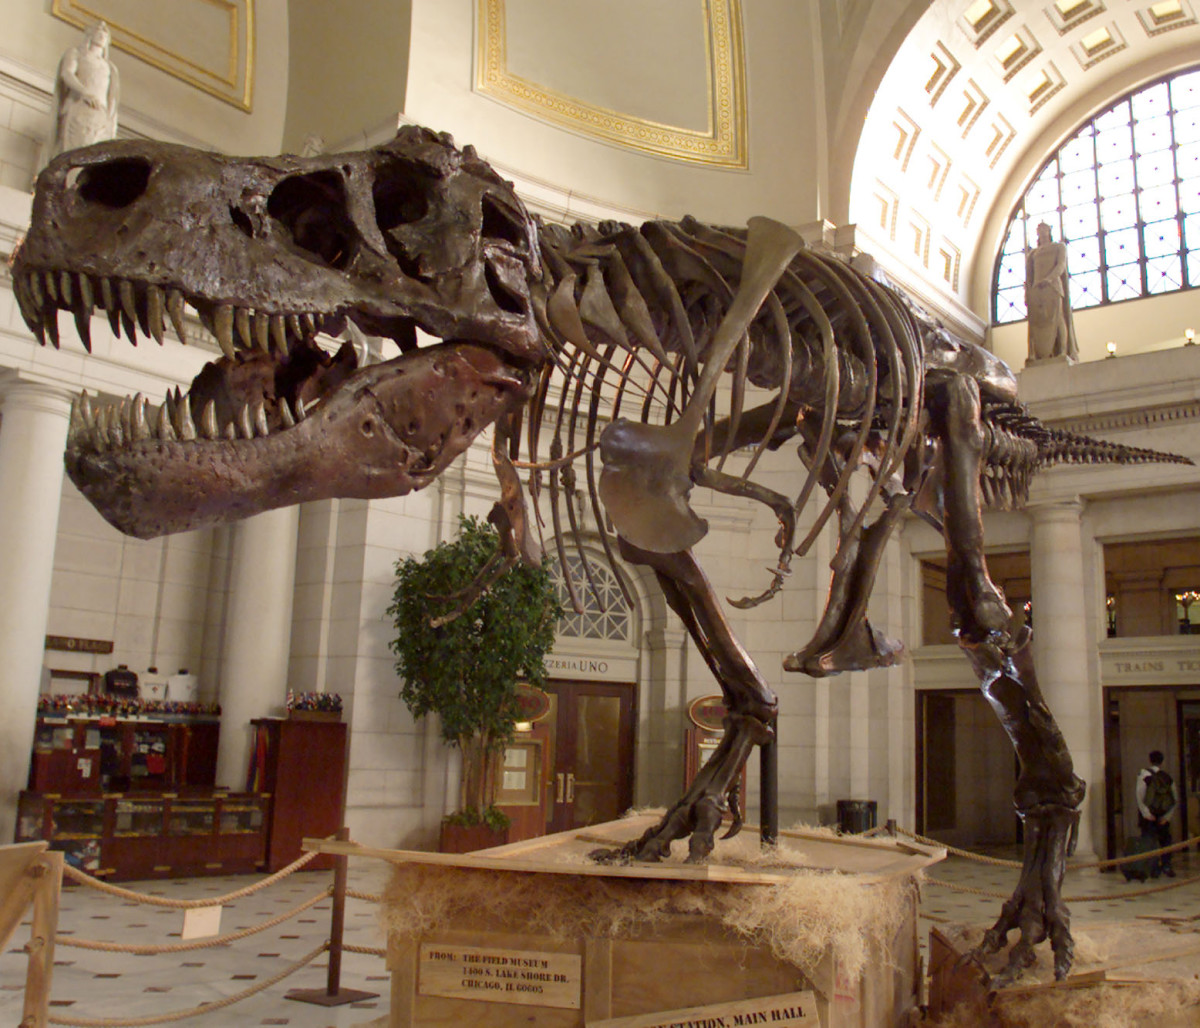 The T-Rex skeleton known as Sue on display in Washington D.C.'s Union Station in 2000.